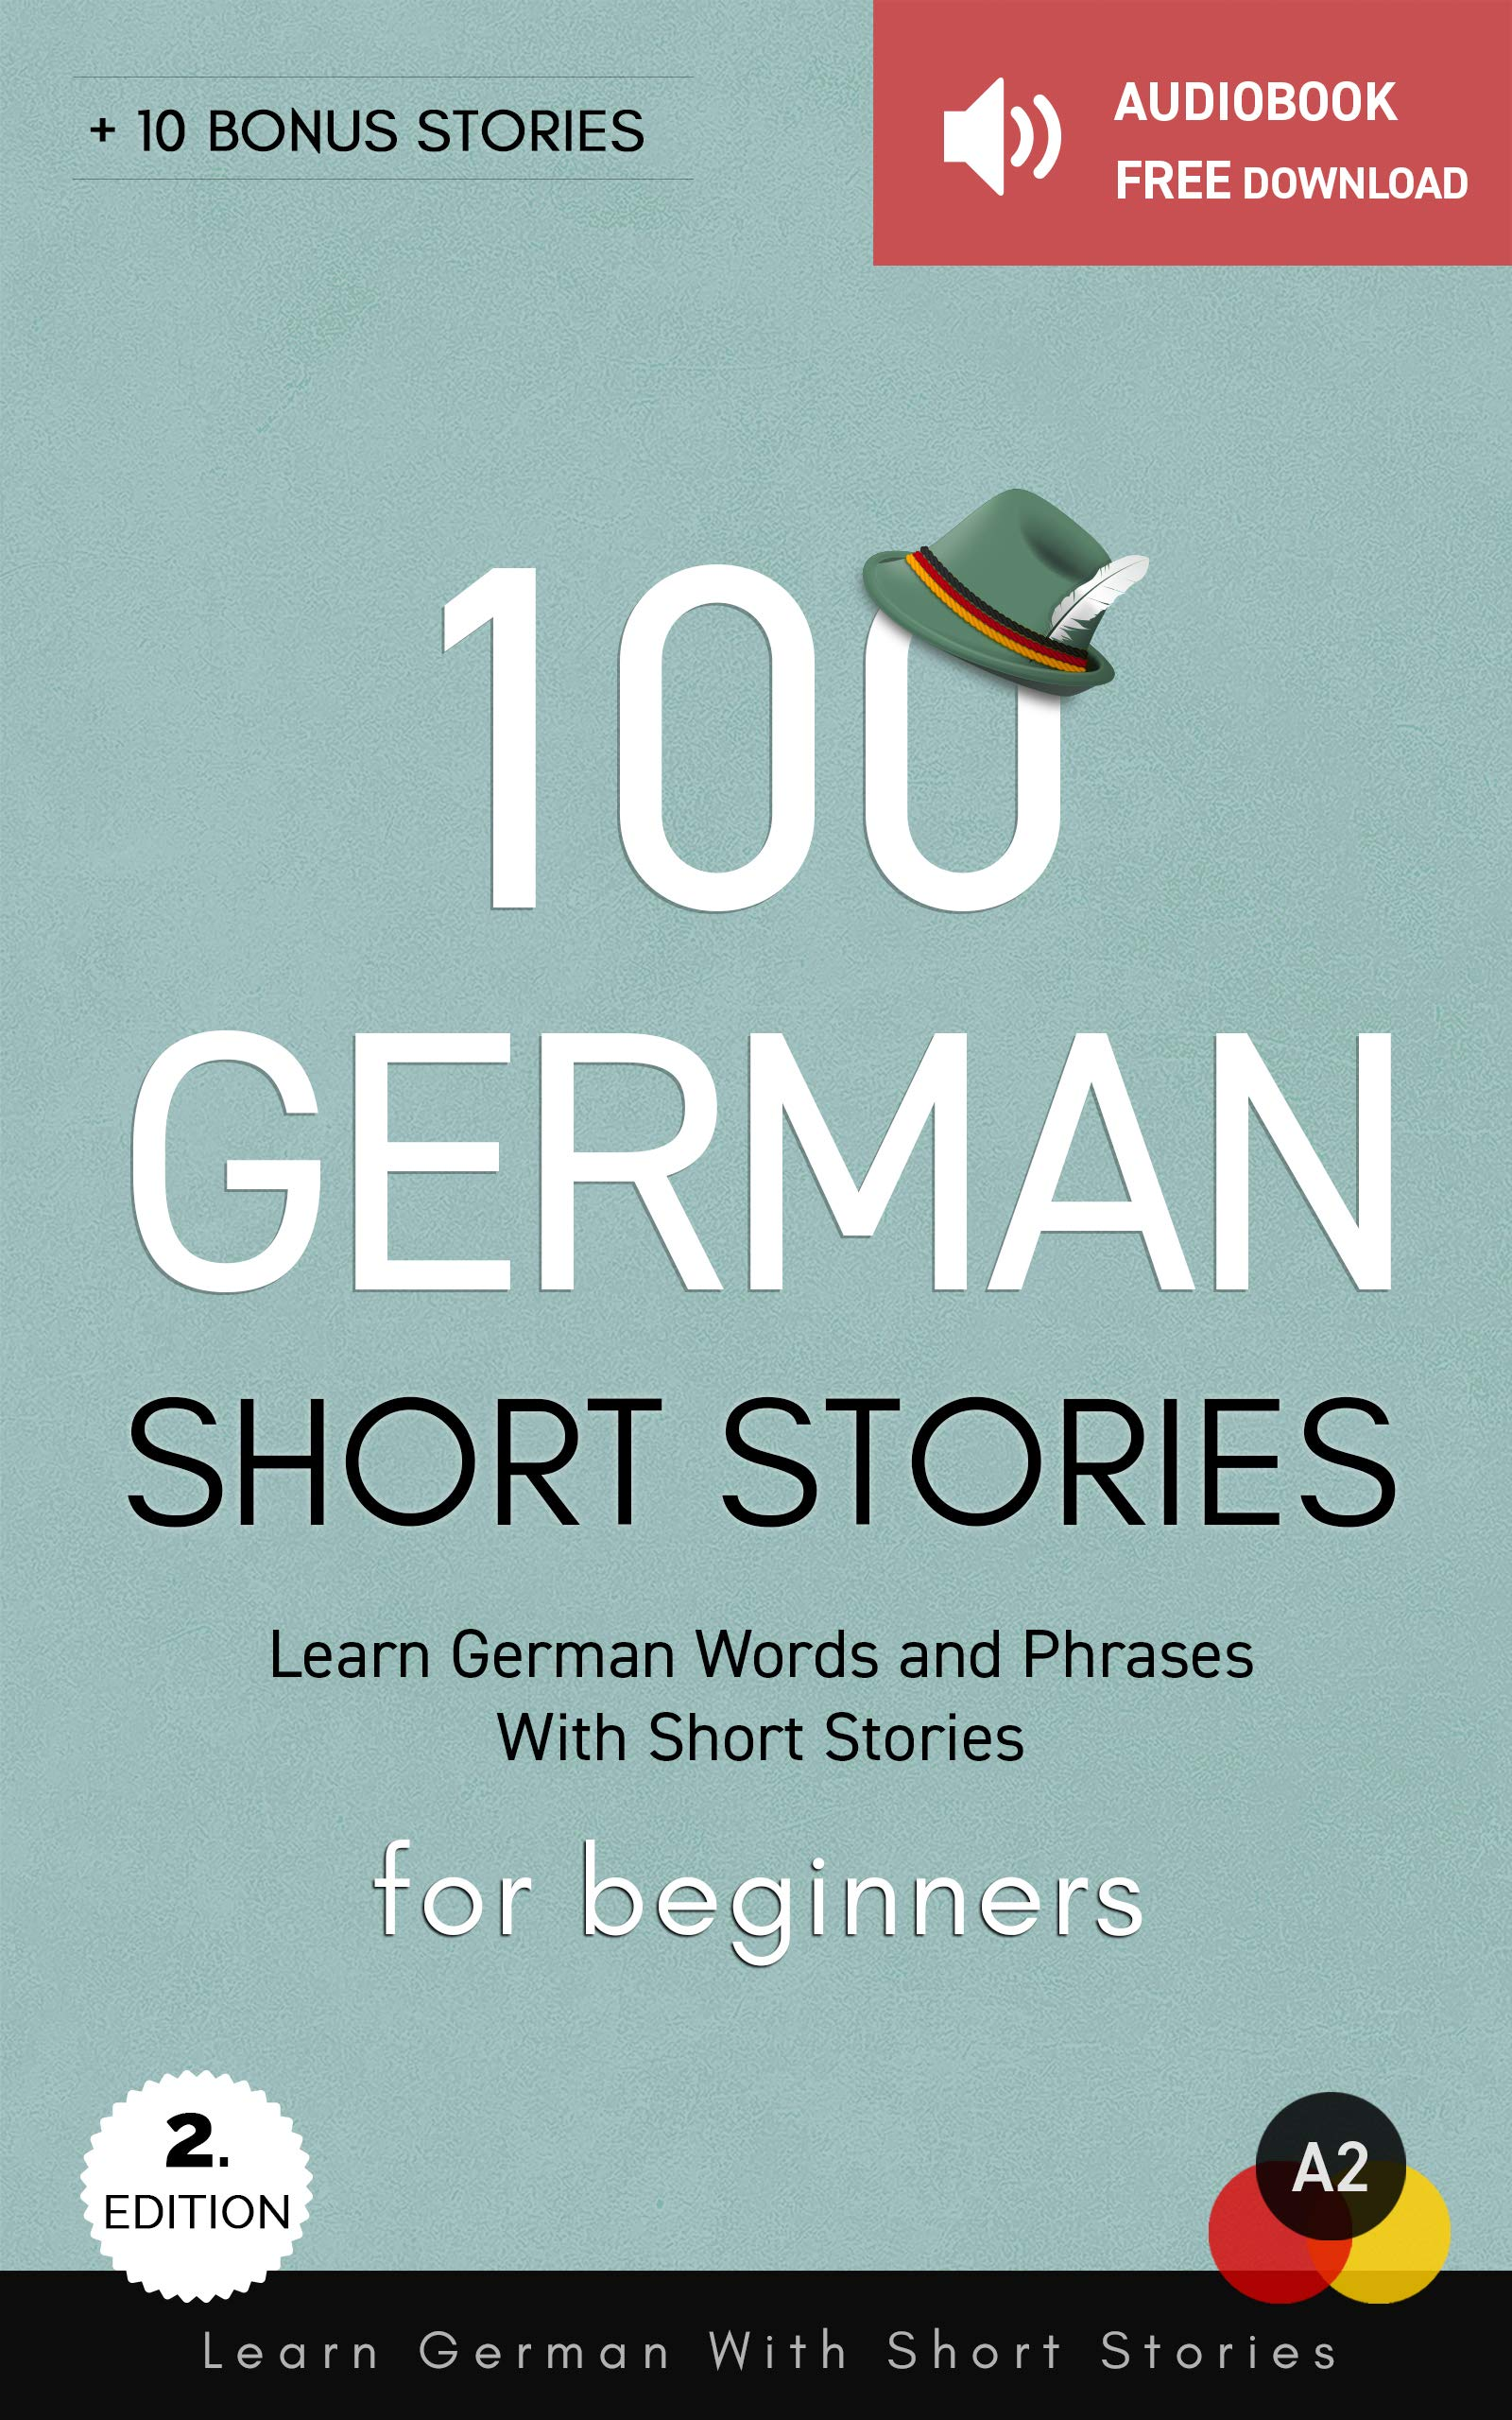 100 German Short Stories For Beginners Learn German With Short Stories  Audiobook Free Download